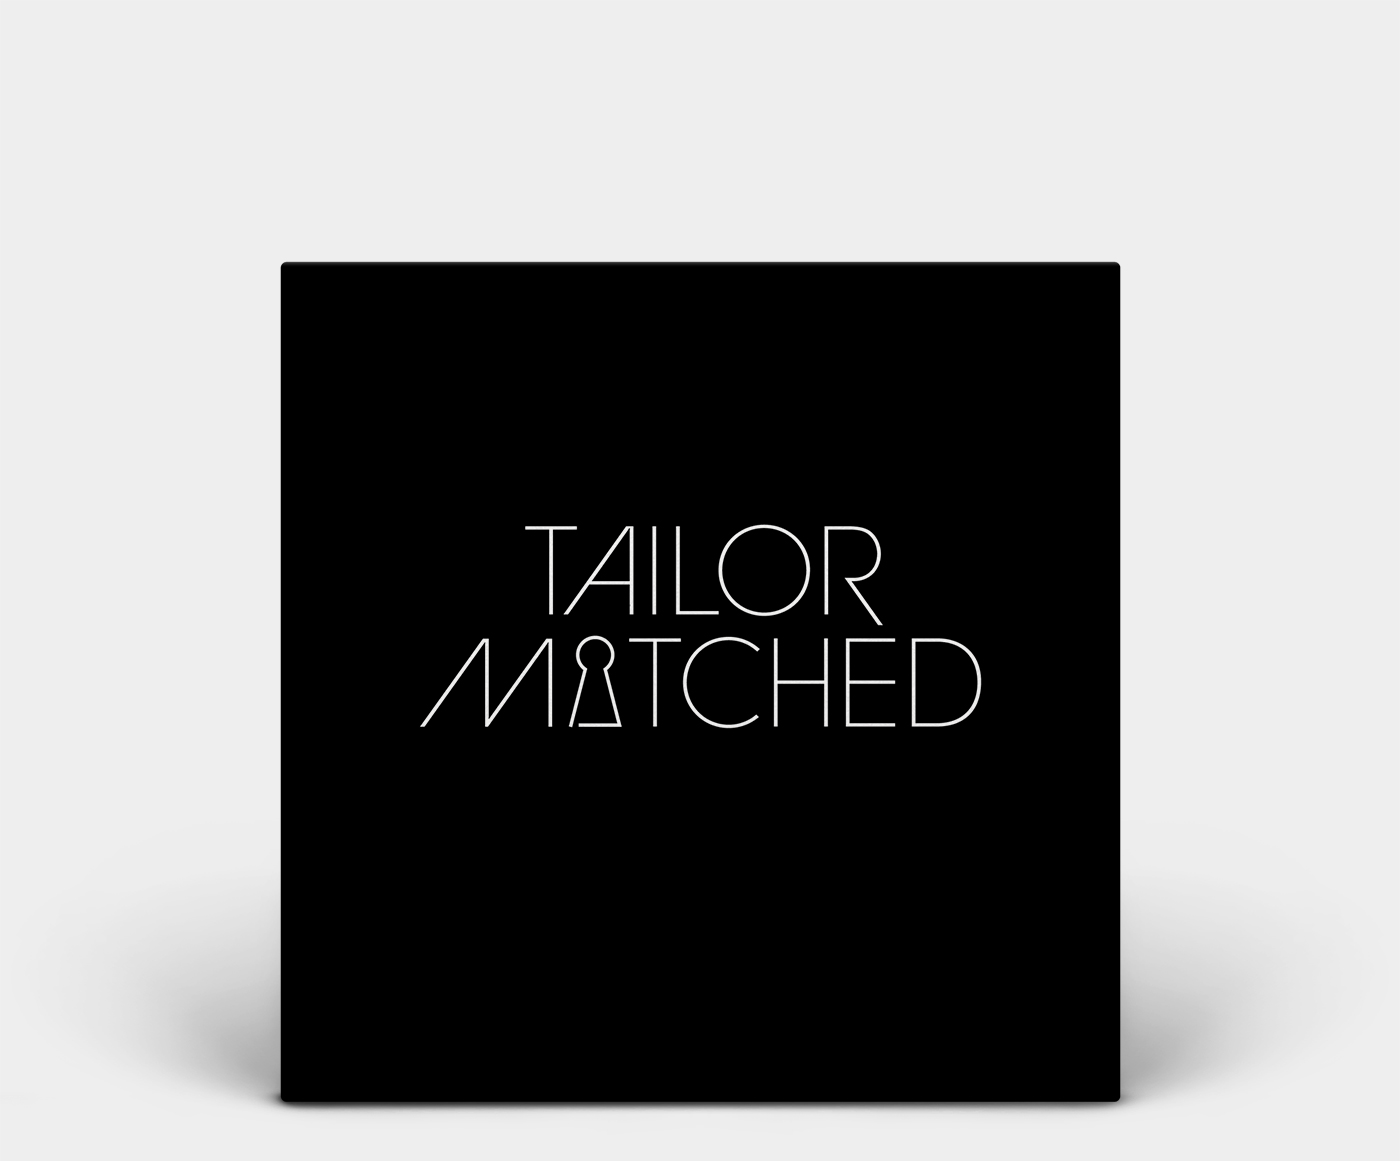 tailor matched